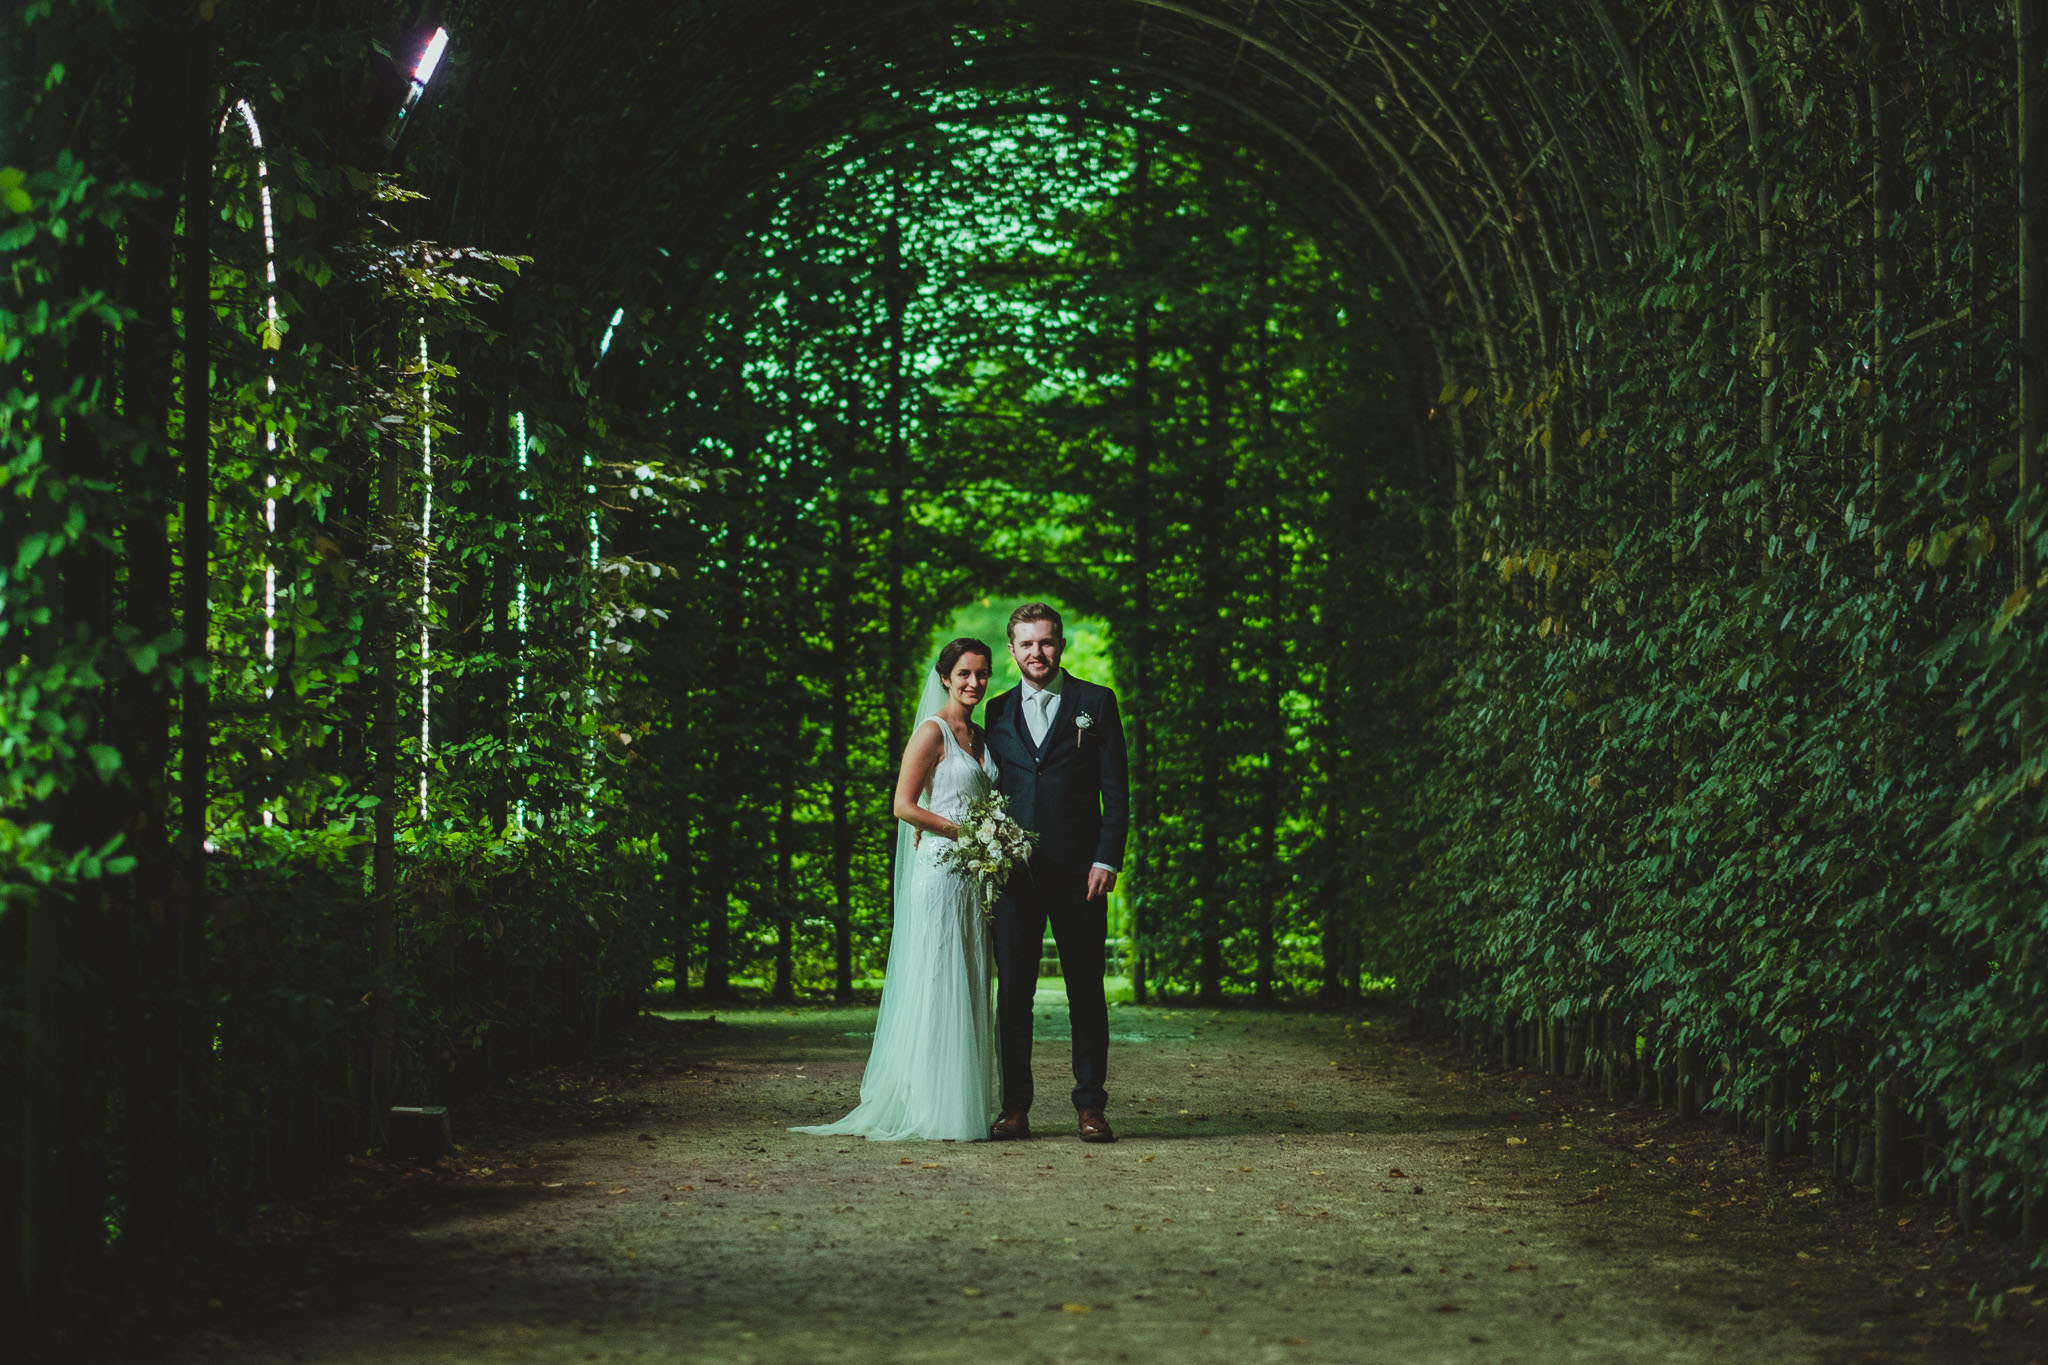 North East England boasts some amazing and unique alternative wedding venues. This is Noor and Callum at The Alnwick Garden in Northumberland.